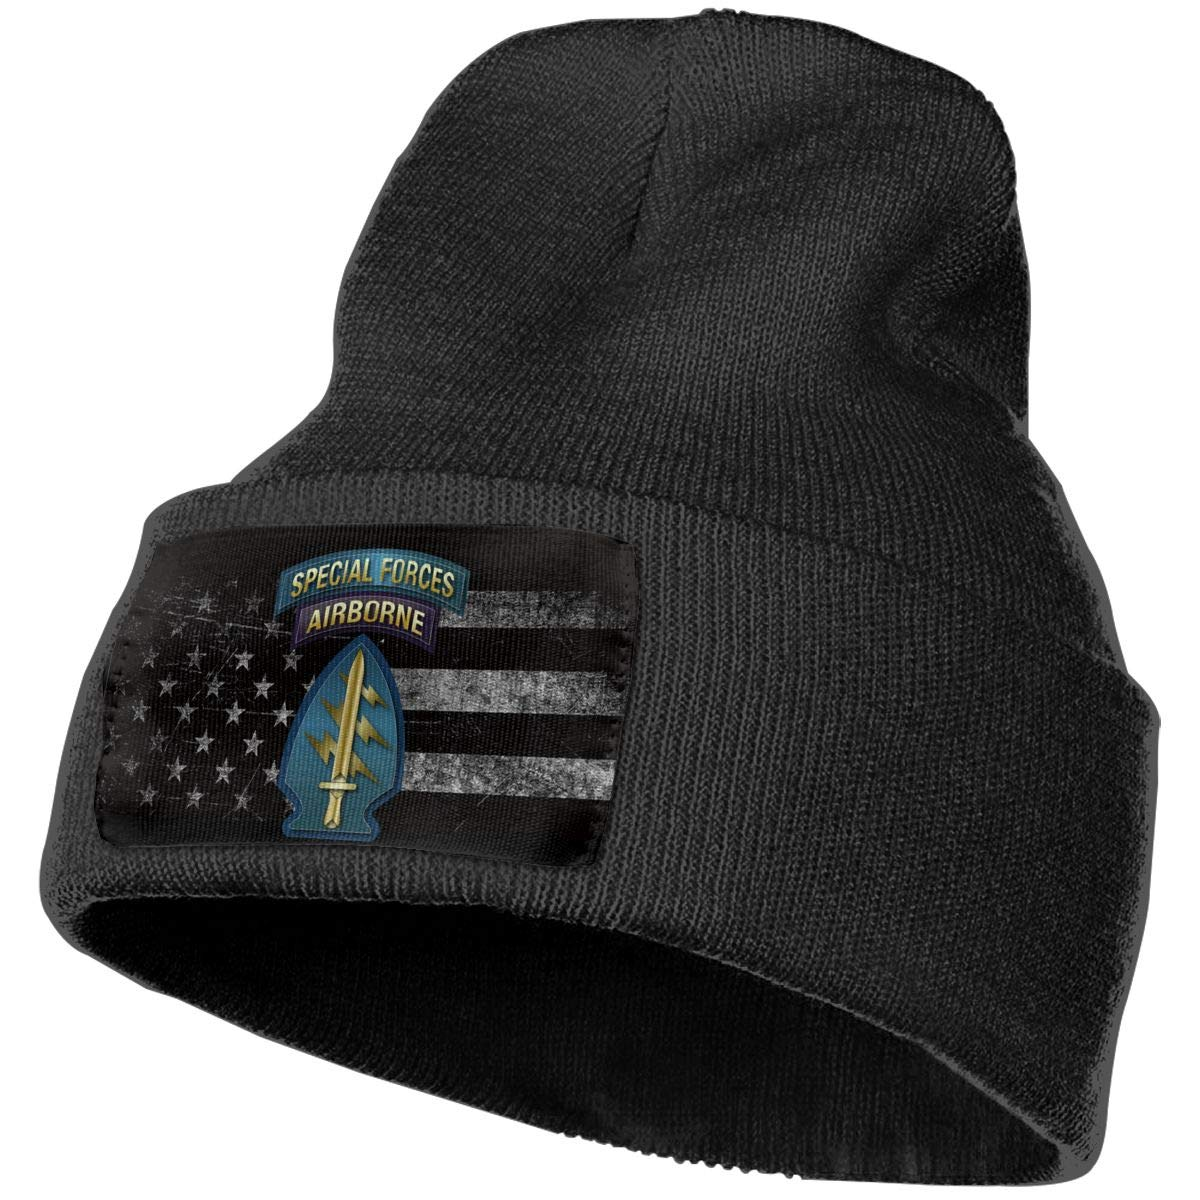 FORDSAN CP US AIR Force Special Forces Airborne Mens Beanie Cap Skull Cap Winter Warm Knitting Hats.